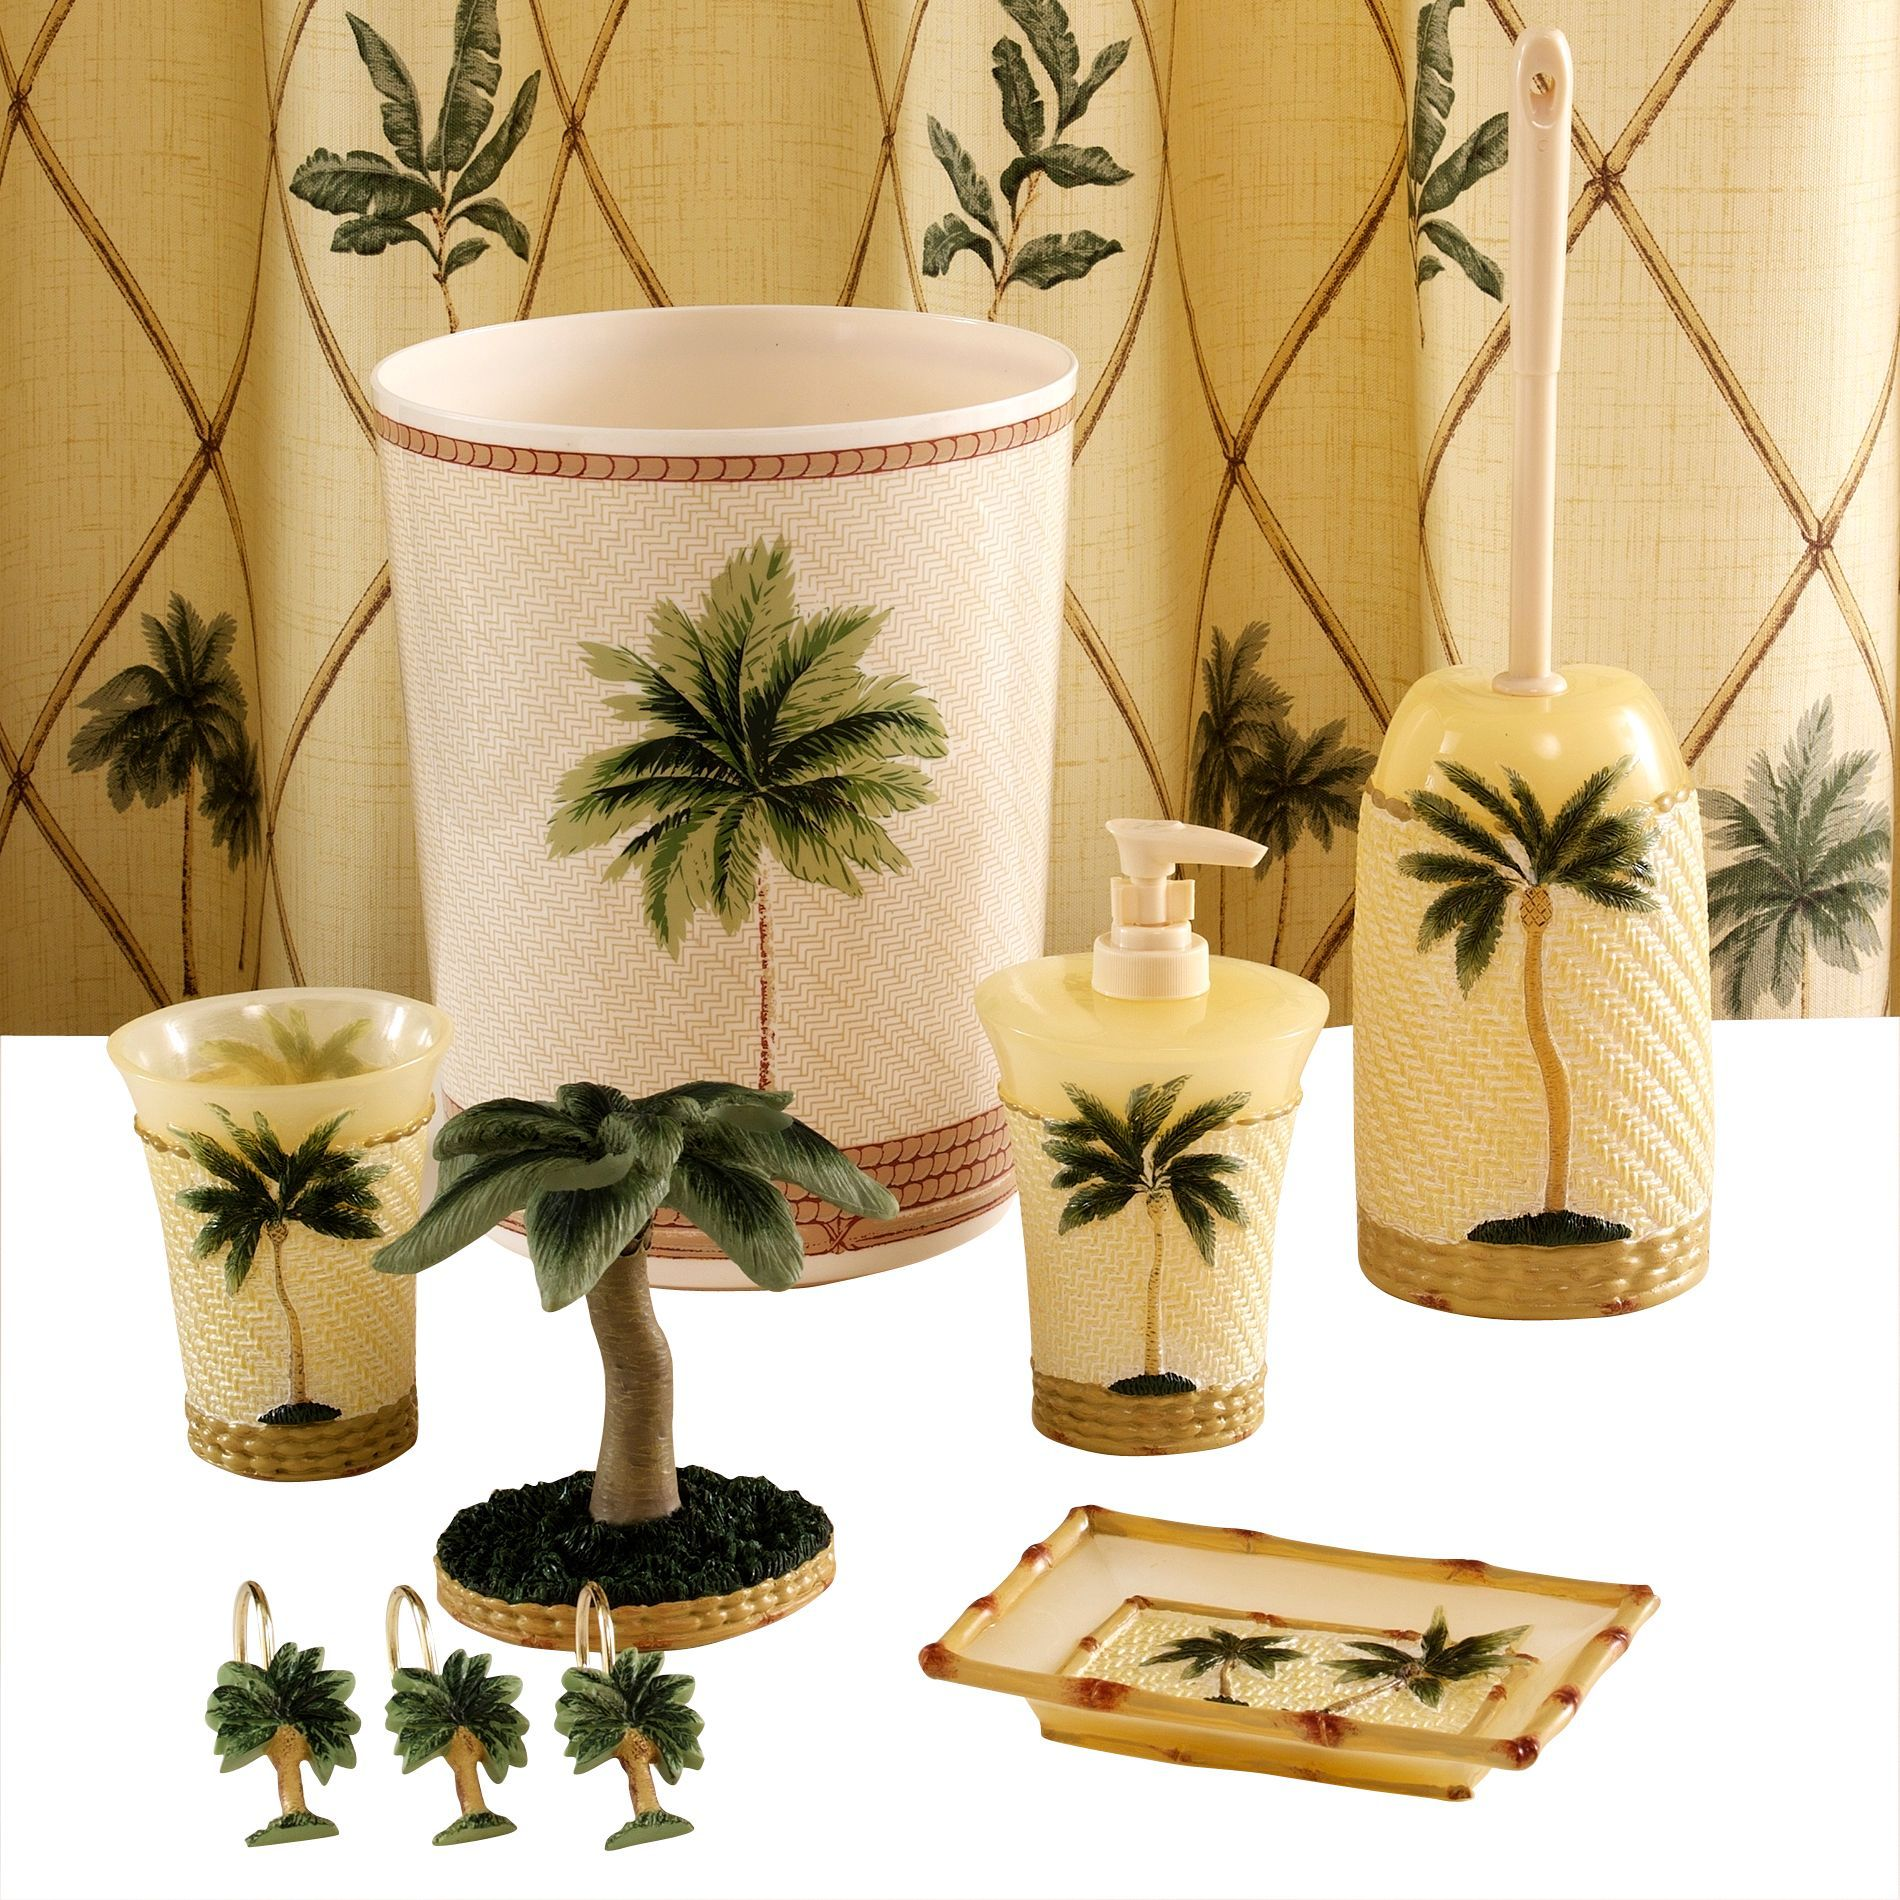 Palm Tree Bathroom Decor In 2020 With Images Palm Tree